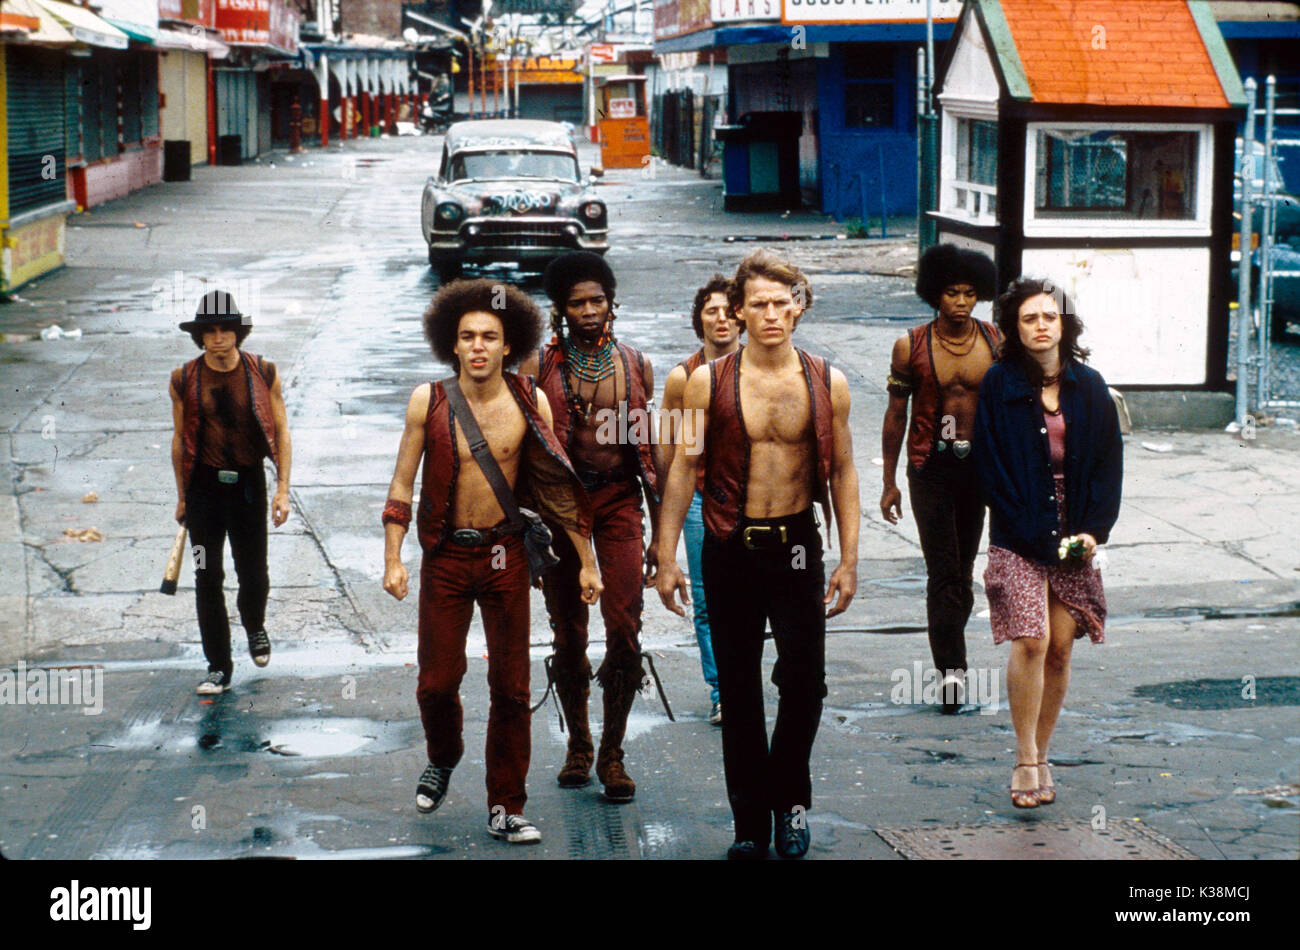 THE WARRIORS [?], [?], DAVID HARRIS, [?], MICHAEL BECK, BRIAN TYLER, DEBORAH VAN VALKENBURGH - Stock Image